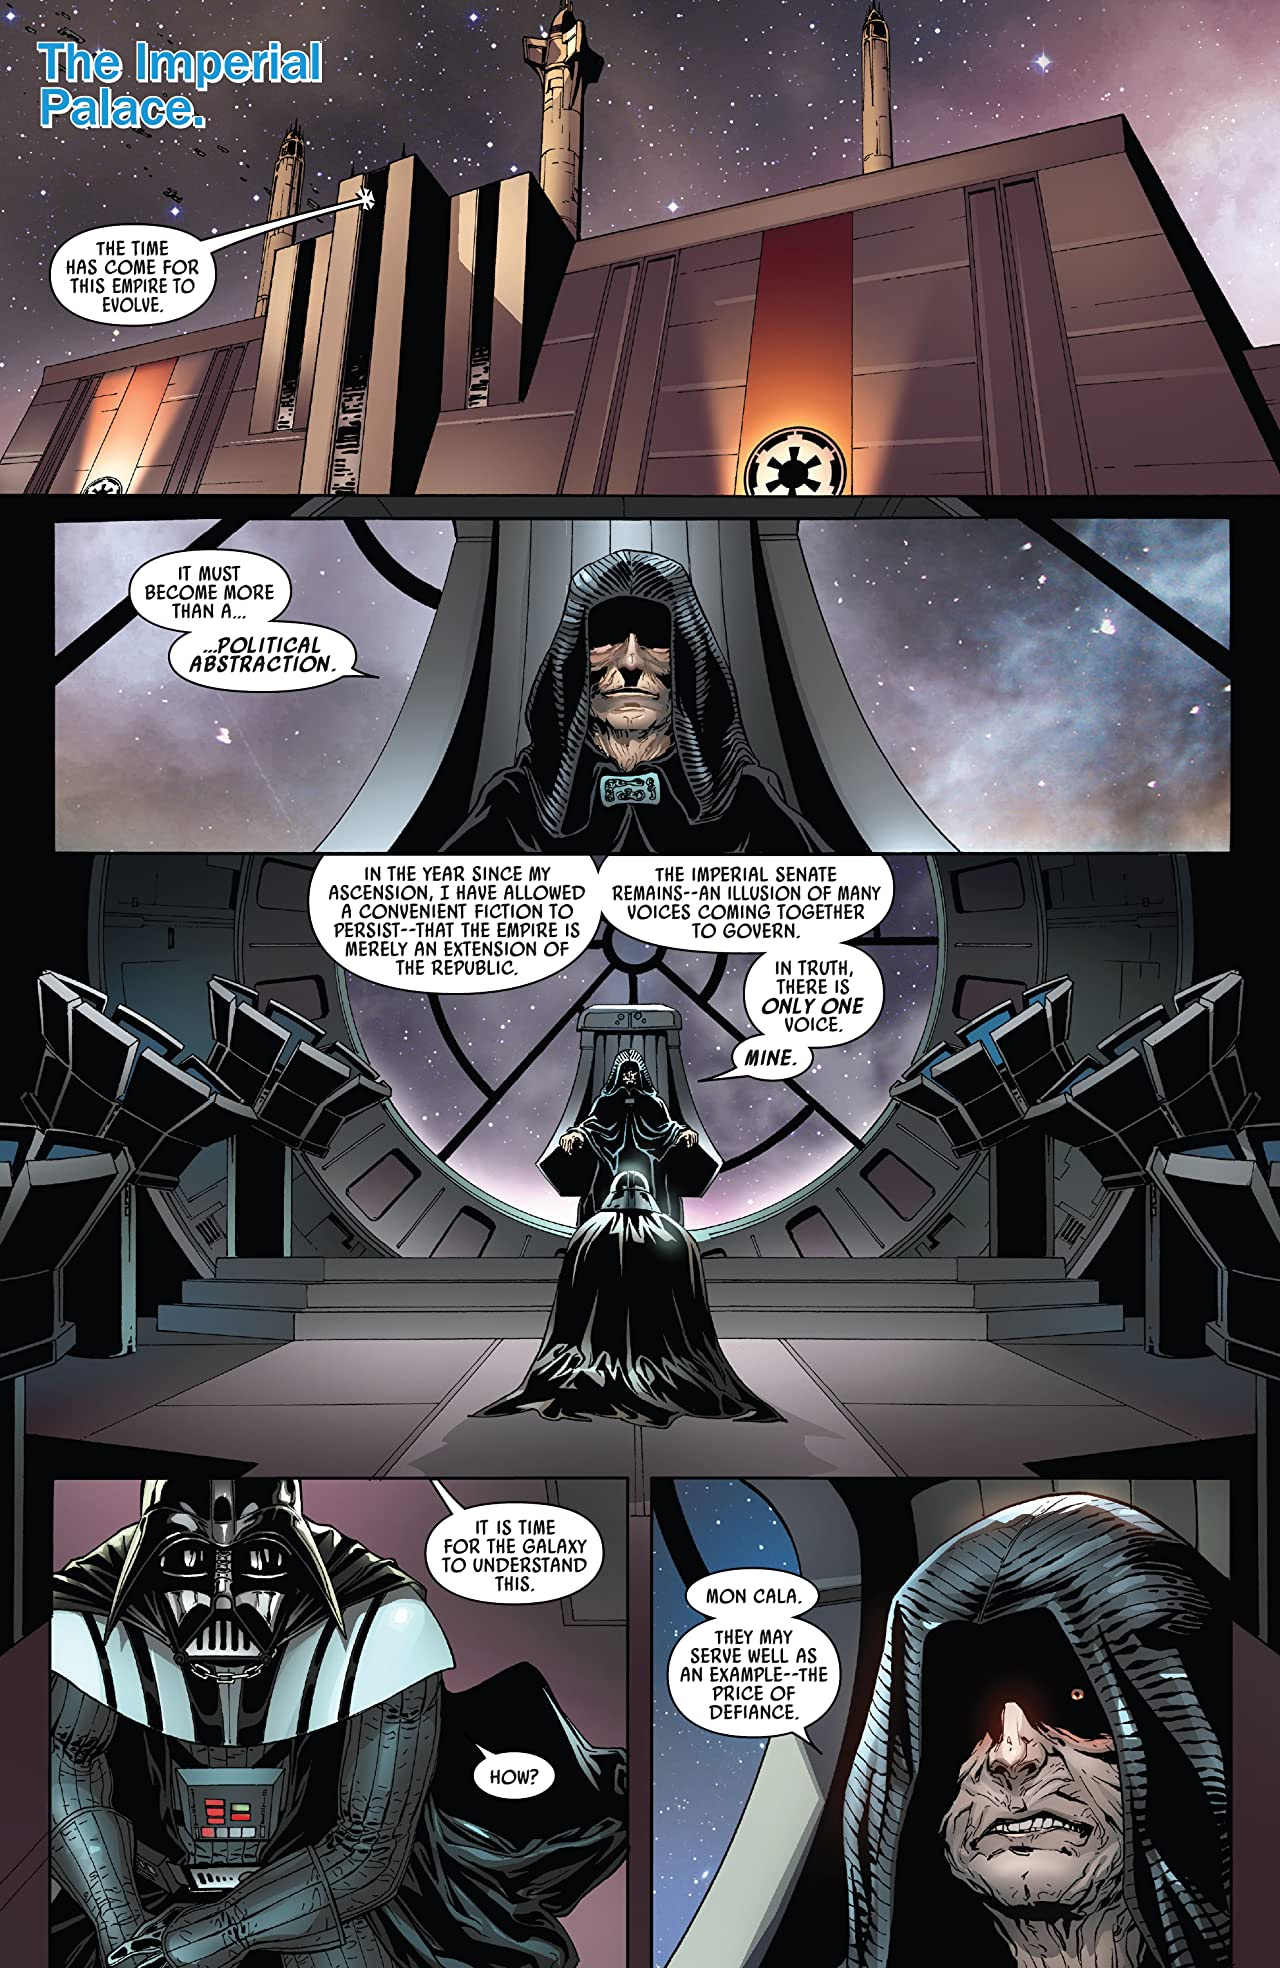 Star Wars: Darth Vader - Dark Lord Of The Sith Vol. 2 Collection